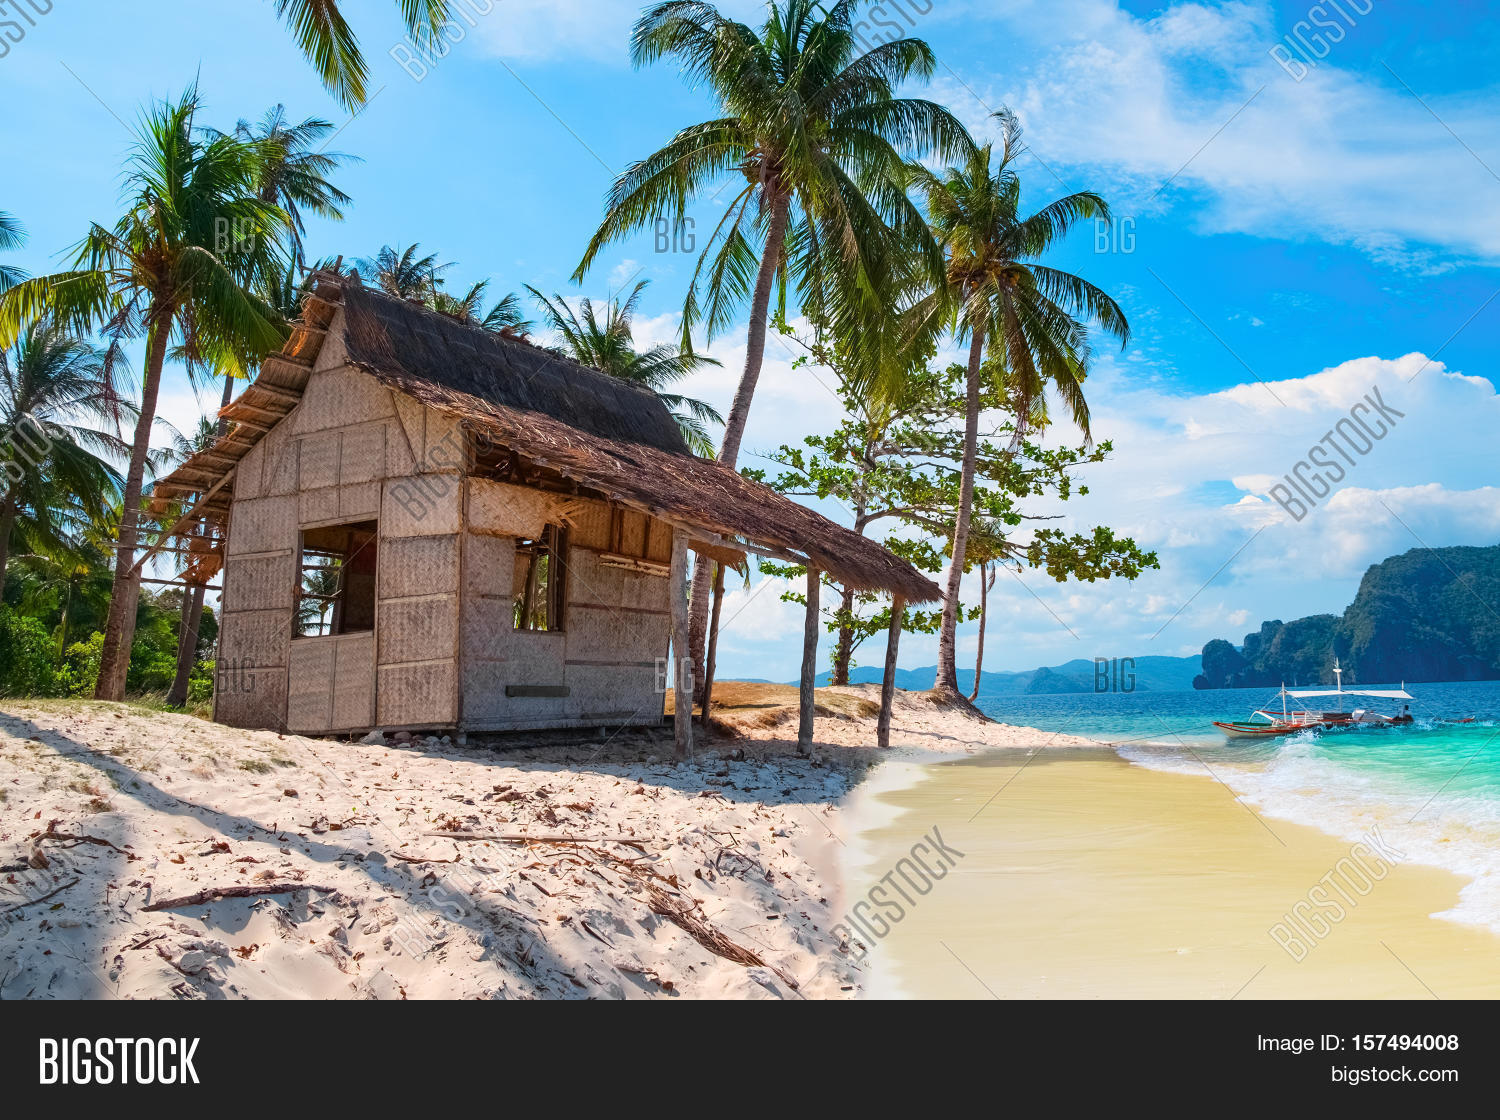 Scenic Tropical Landscape El Nido Palawan Philippines Southeast Asia.  Beautiful Tropical Island With Hut Sandy